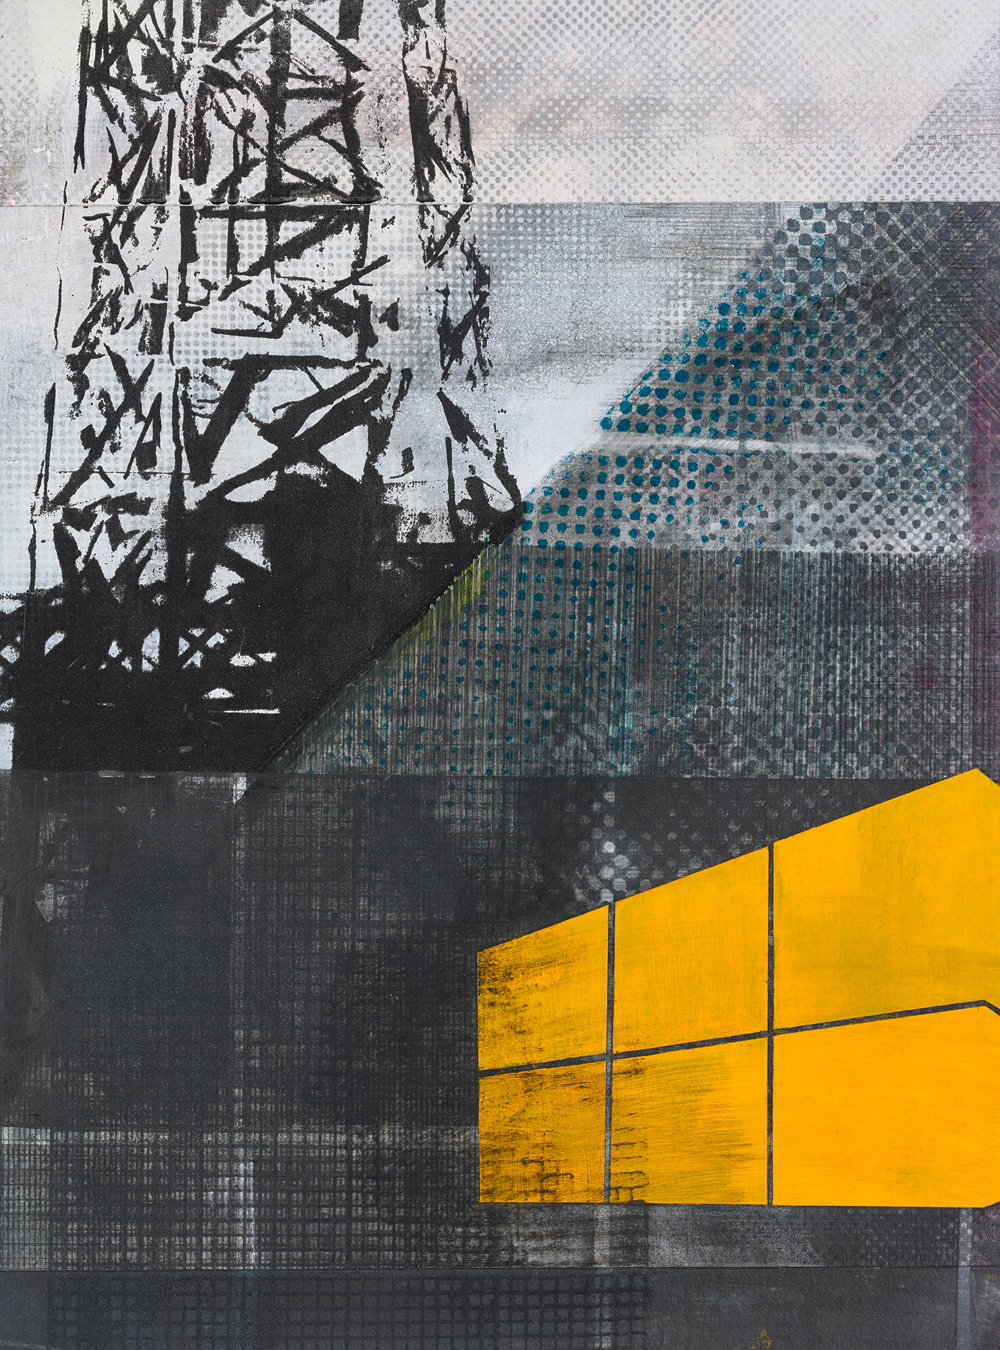 Amanda Knowles, Duwamish Study VII, 2018, screen print, graphite, acrylic on paper, 14.75 x 10.75 inches, $650.